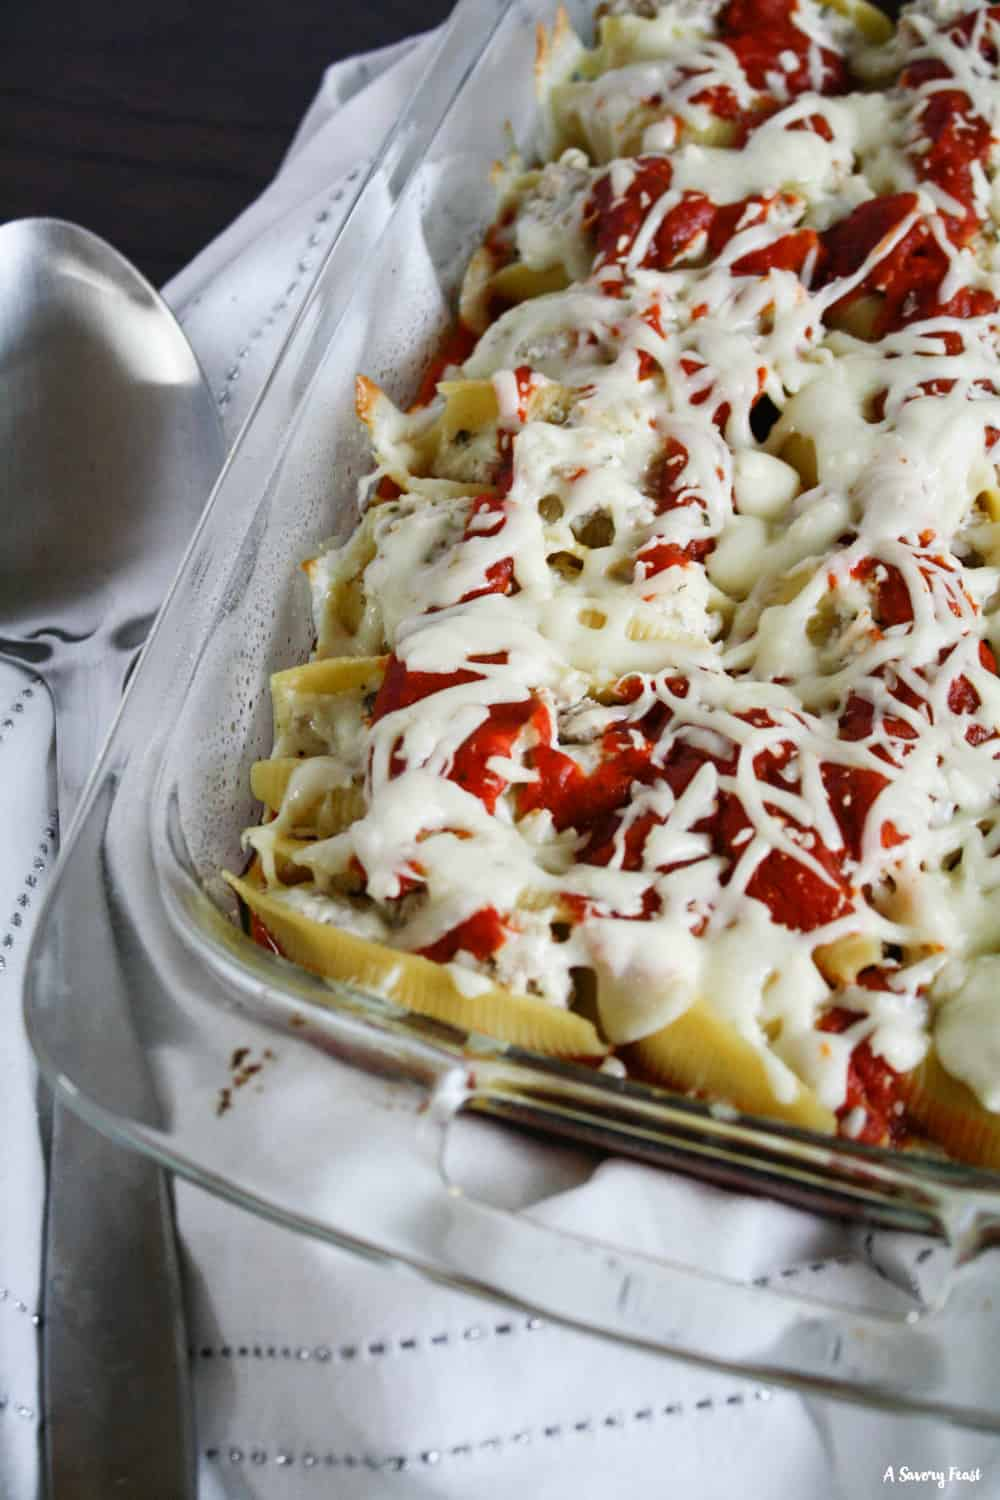 Italian Ground Turkey Stuffed Shells are a delicious option for a weeknight meal, entertaining or freezer meals. Made with ground turkey instead of beef and packed with flavor! Stuffed shells are the ultimate comfort meal.